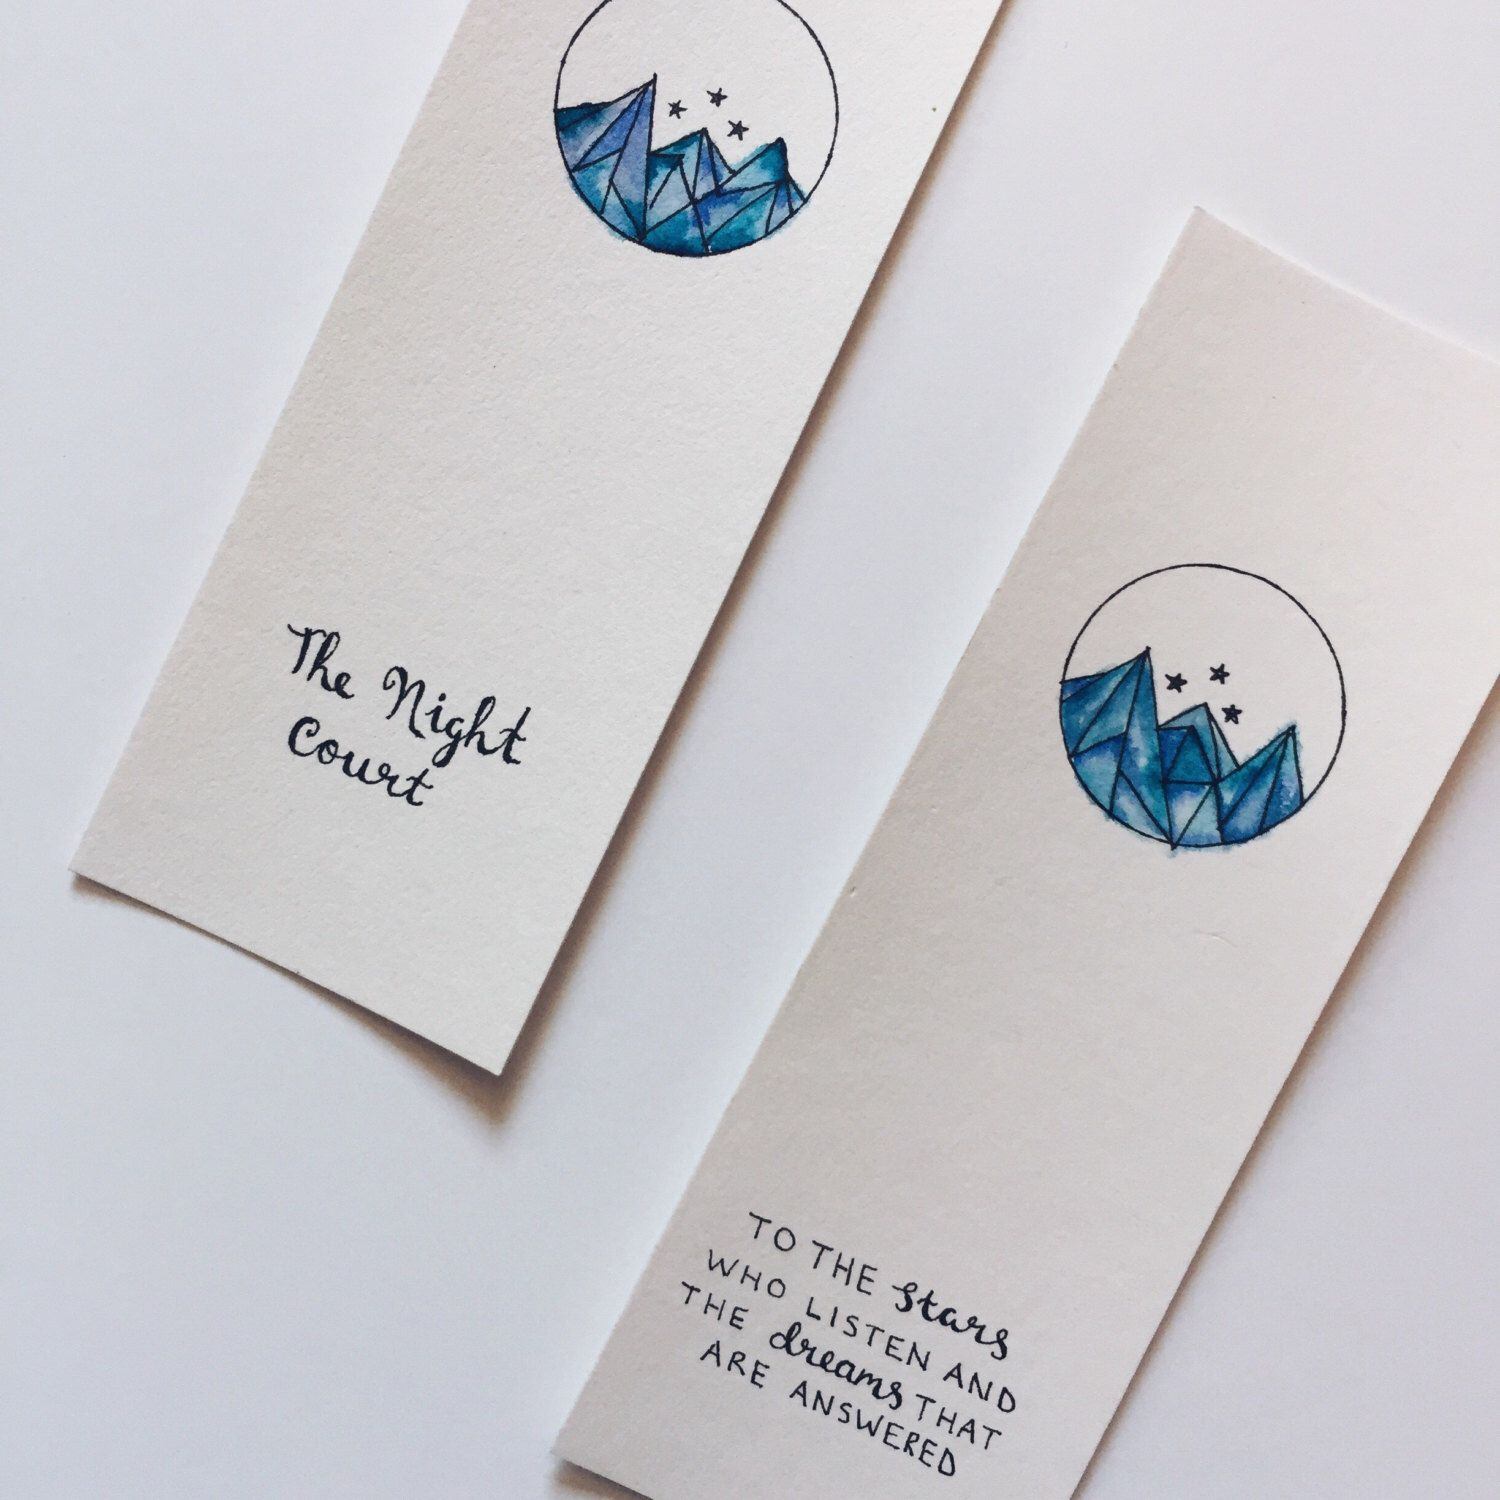 The Night Court S J Maas Watercolour Bookmark By Bloomsbery